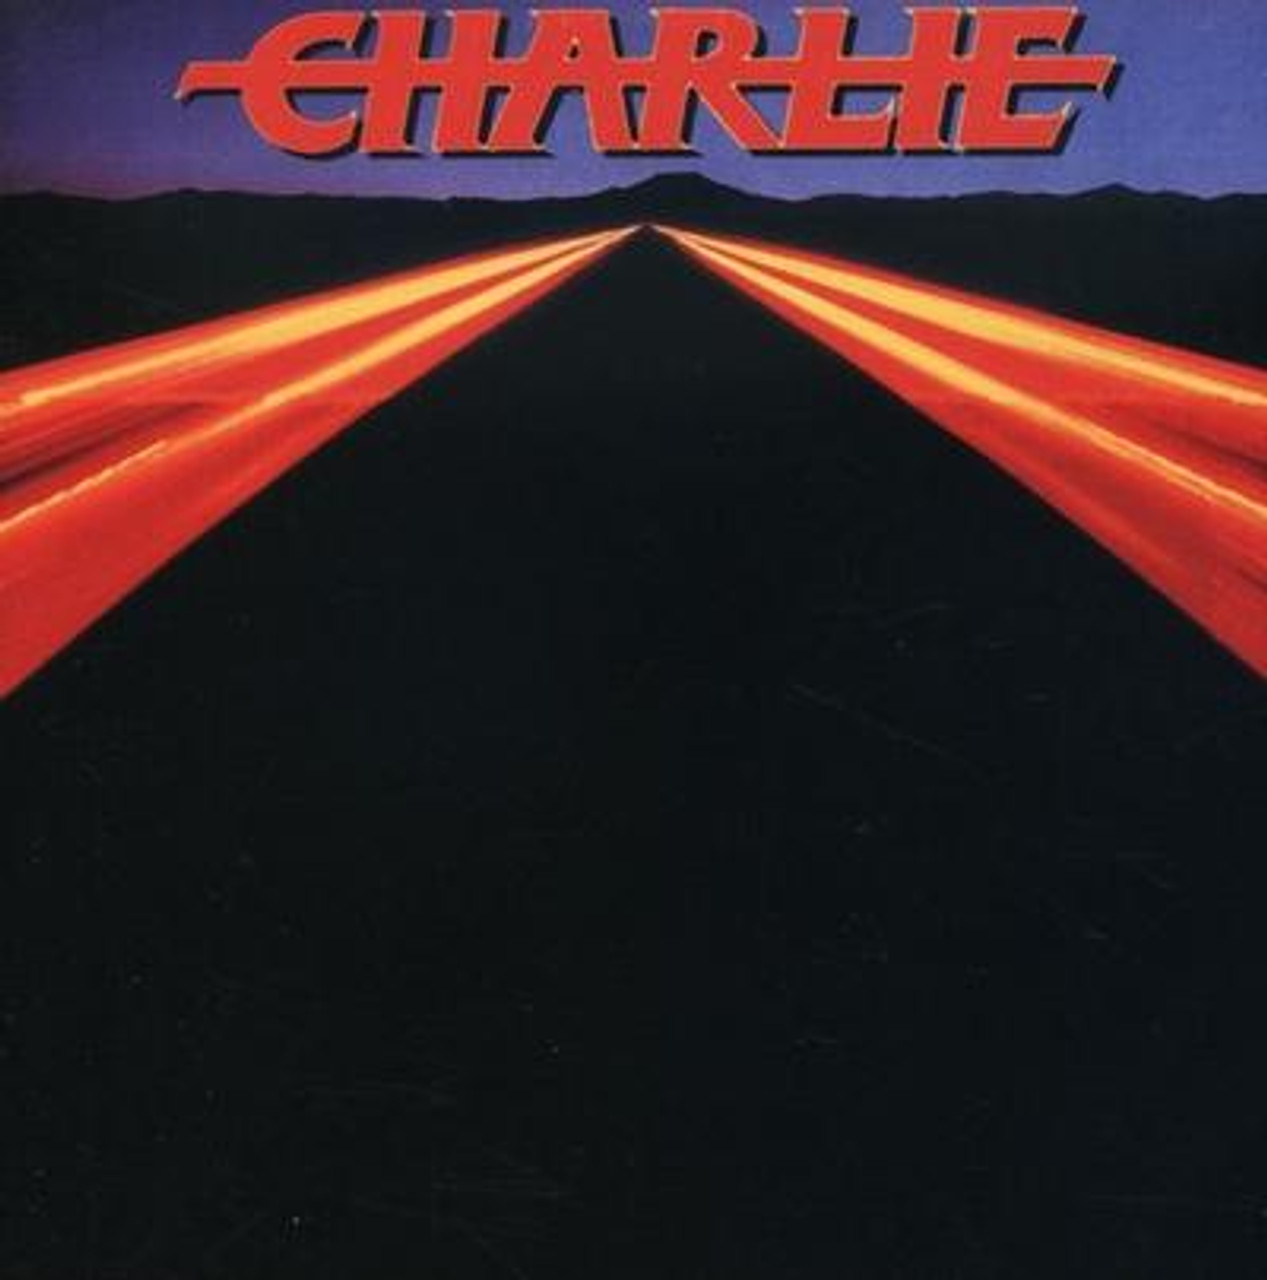 Charlie by Charlie available on CD by Renaissance Records.